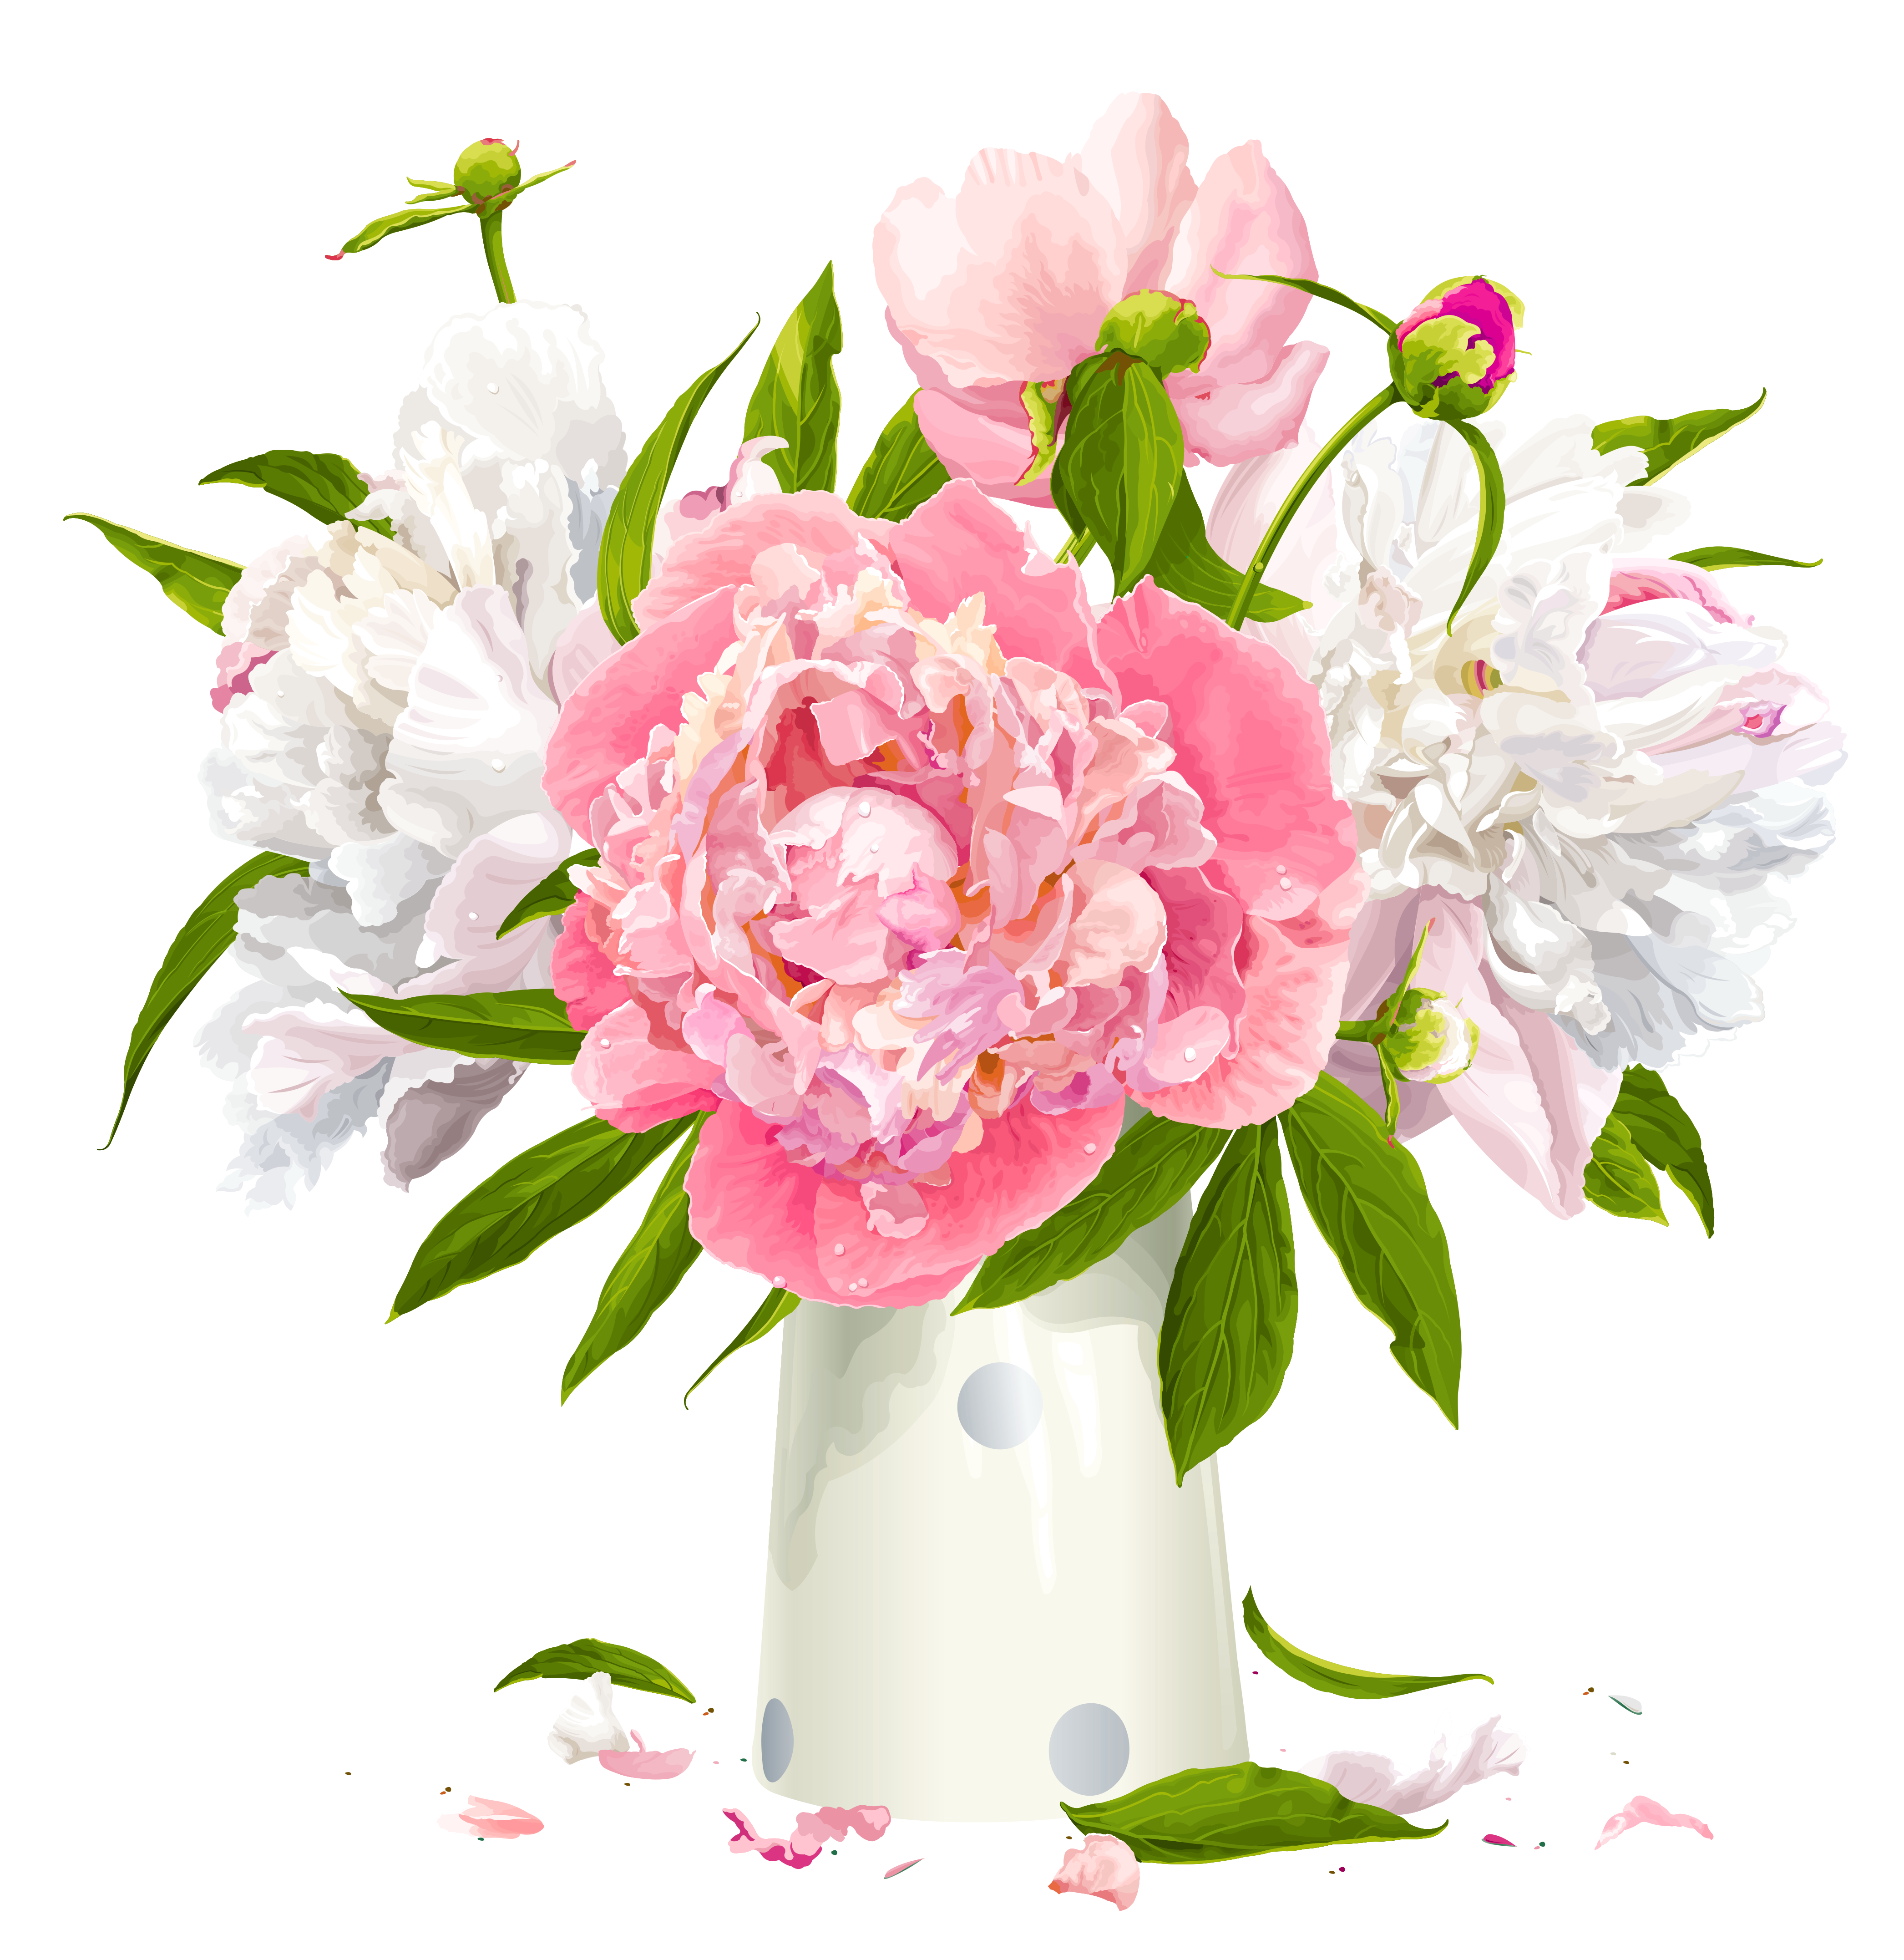 Peonies flower clipart free library Peony cliparts | Printable images | Peonies, Vase, Flower ... free library